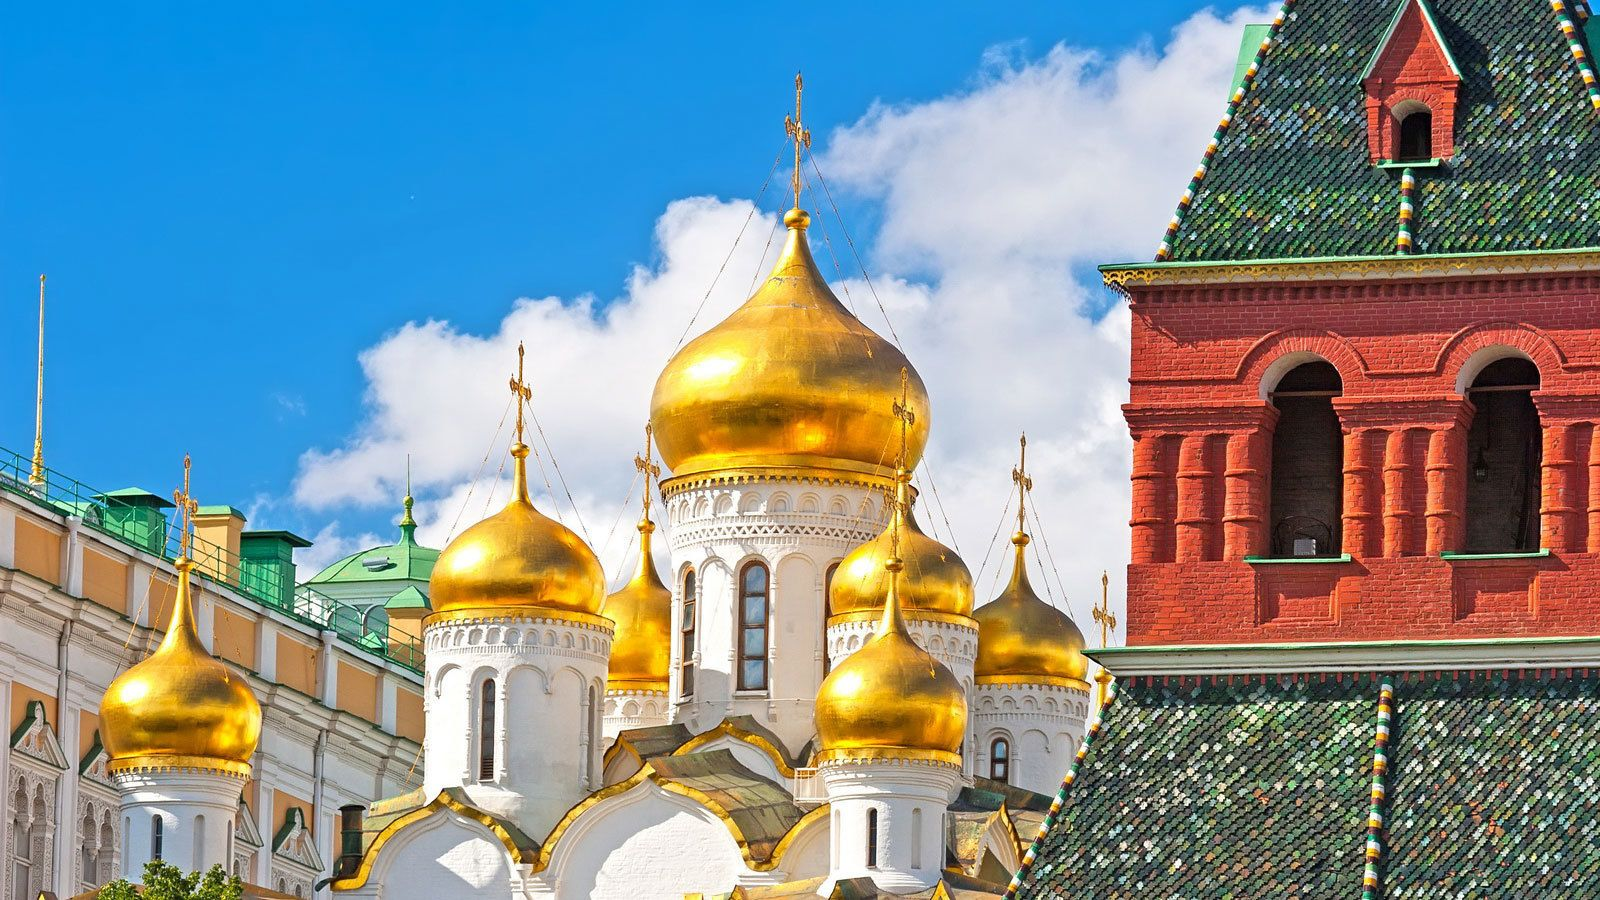 Golden domed spires of the Cathedral of Annunciation